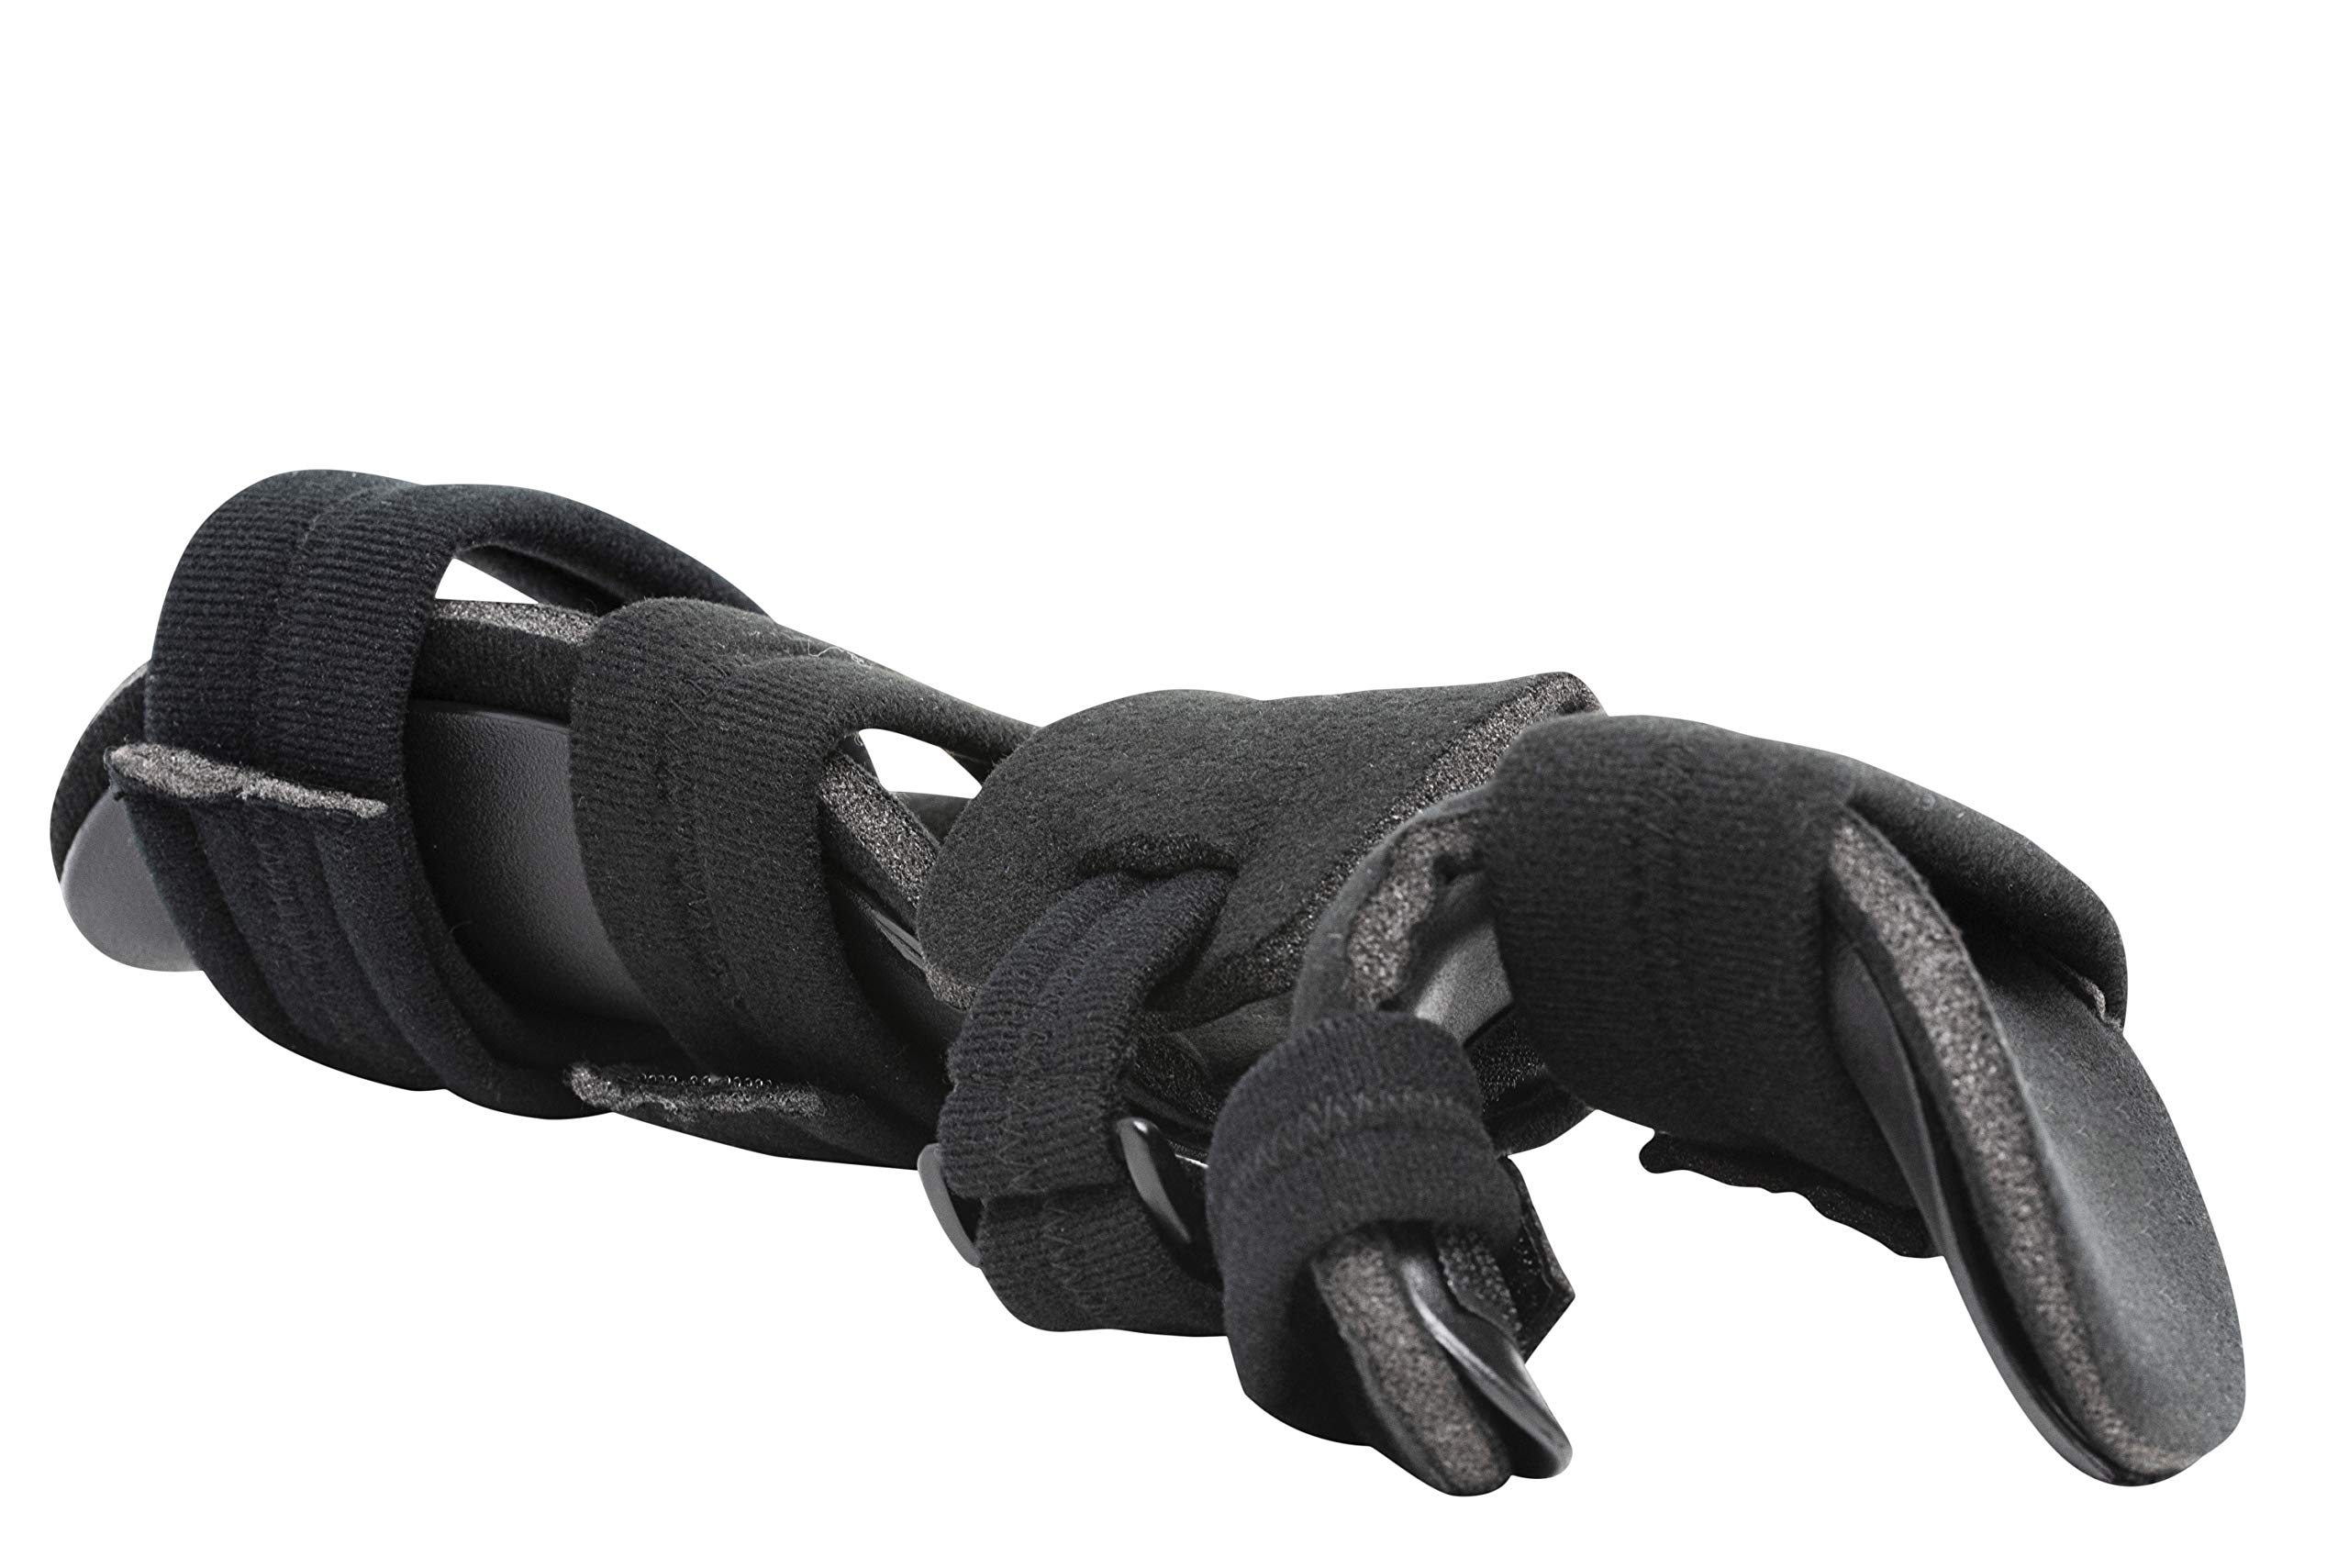 Stroke Hand Splint- Soft Resting Hand Splint for Flexion Contractures, Comfortably Stretch and Rest Hands for Long Term Ease with Functional Hand Splint, an American Heritage Industries(Left, Small) by American Heritage Industries (Image #5)